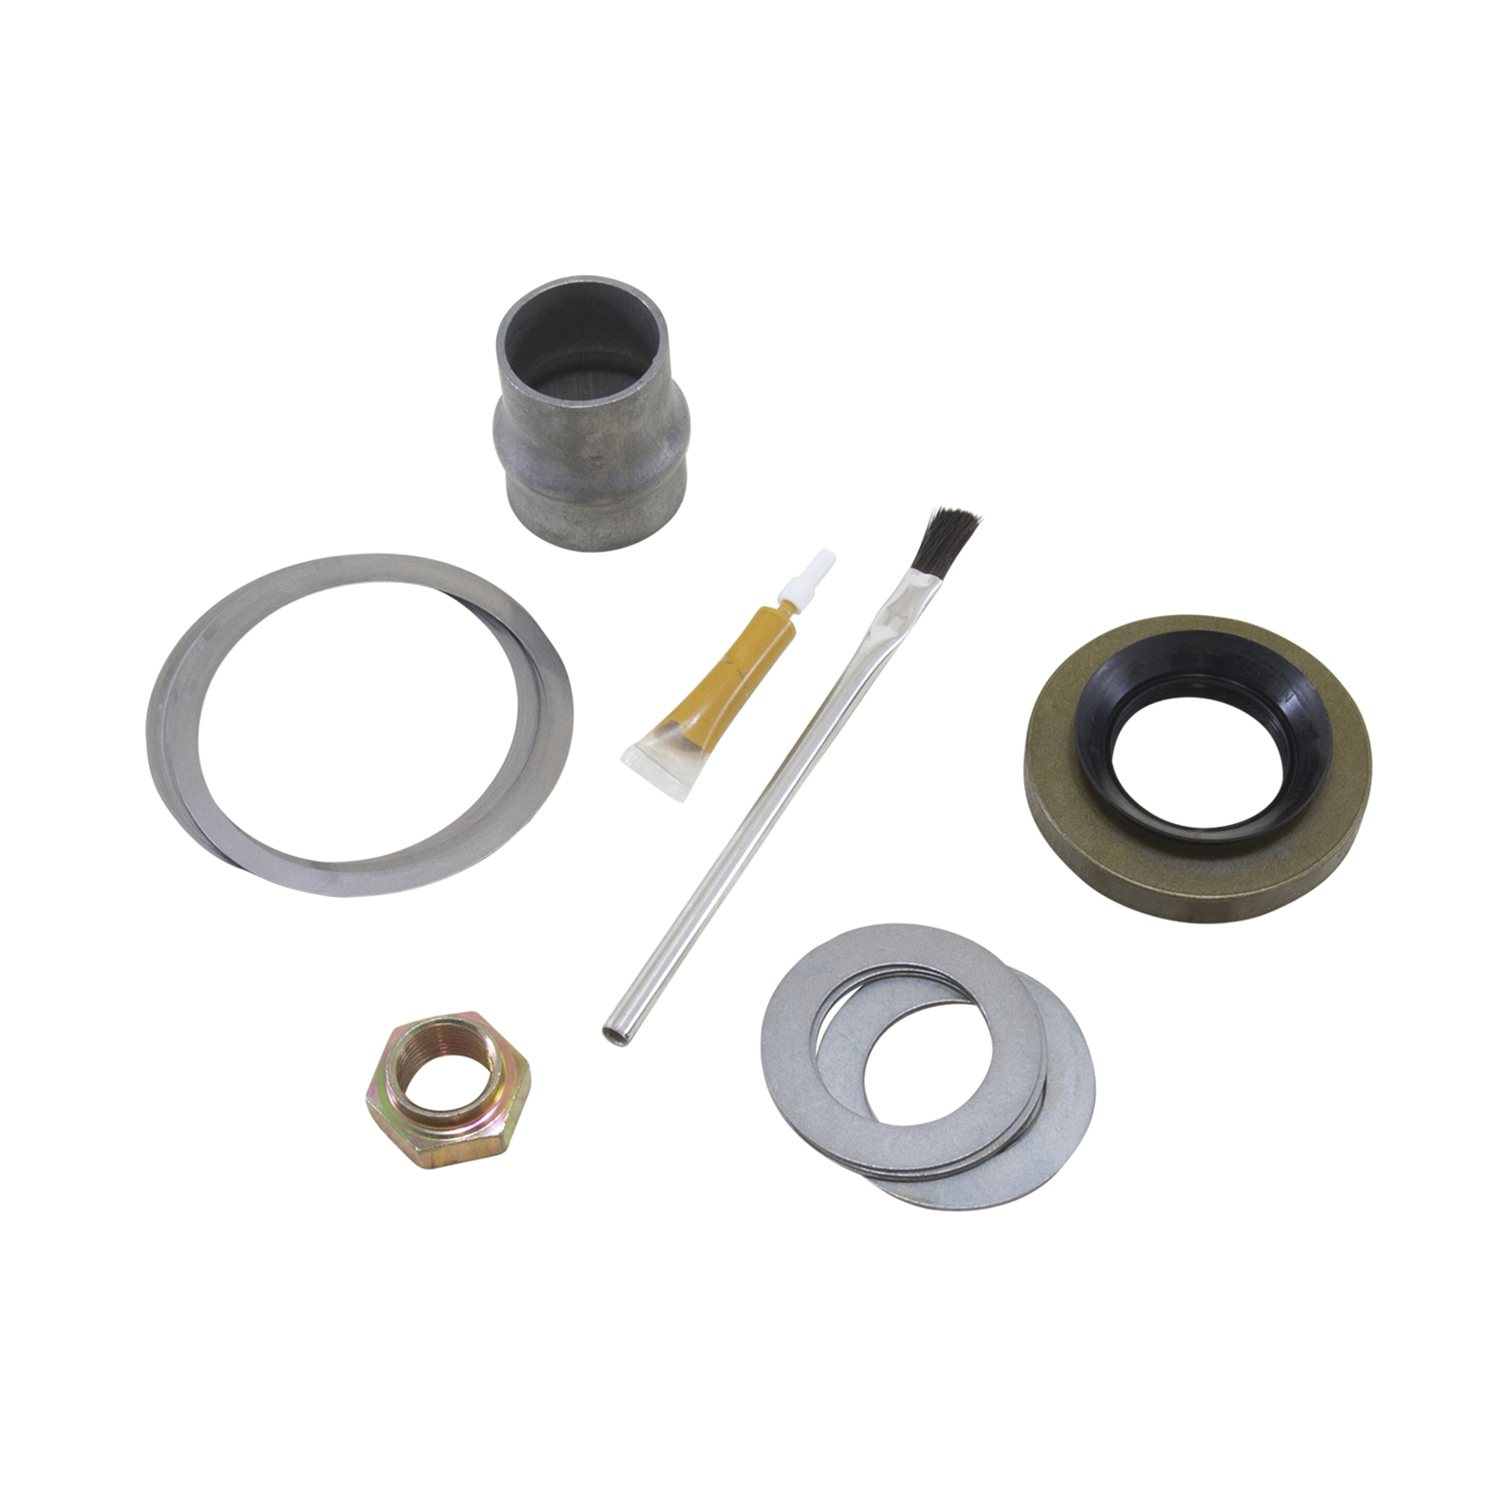 MK ITROOPER - Yukon Minor install kit for Isuzu differential